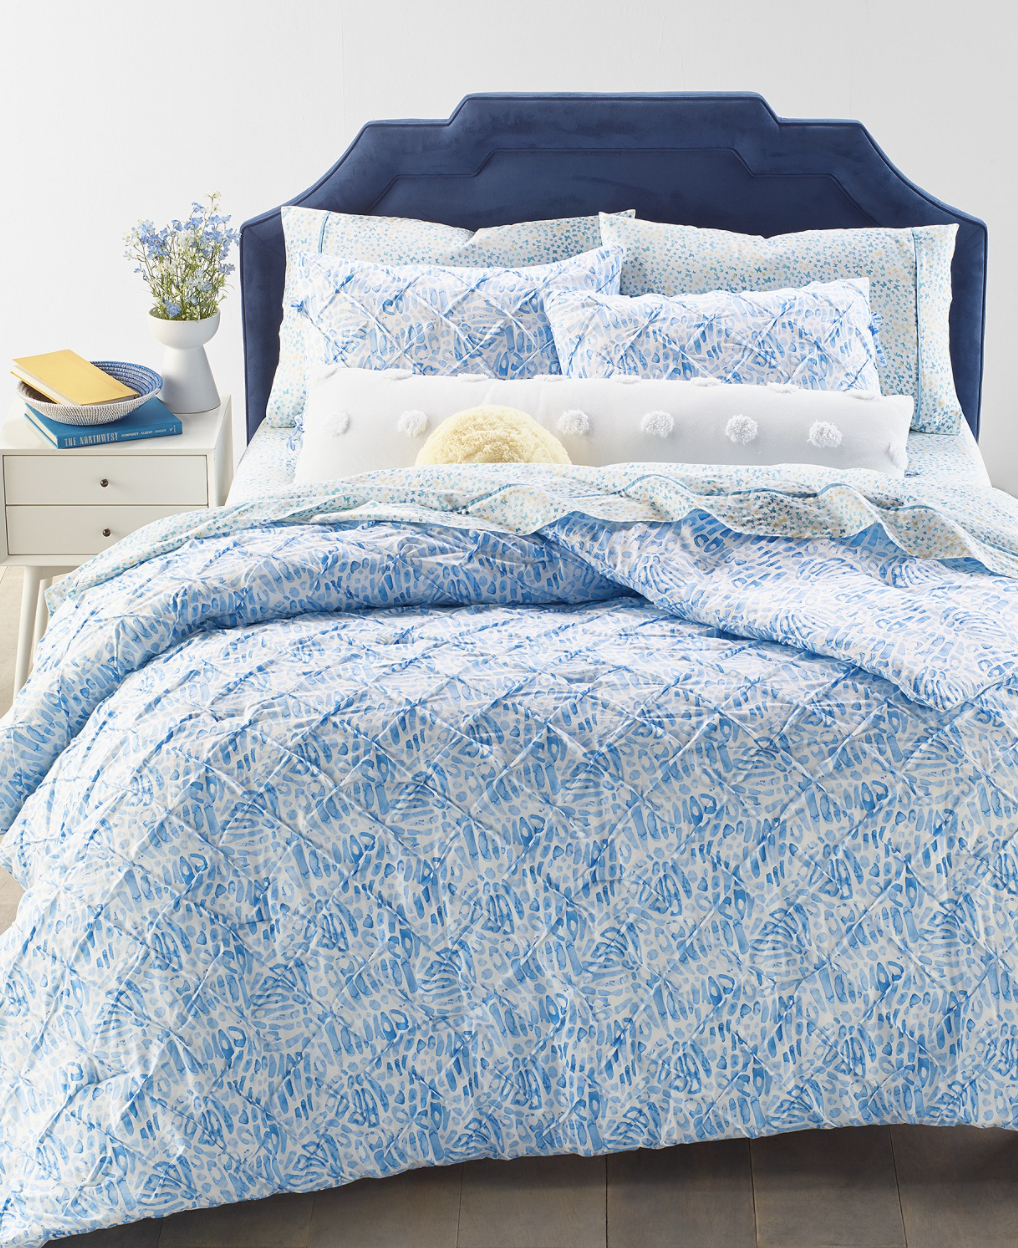 twin xl bedding urban outfitters